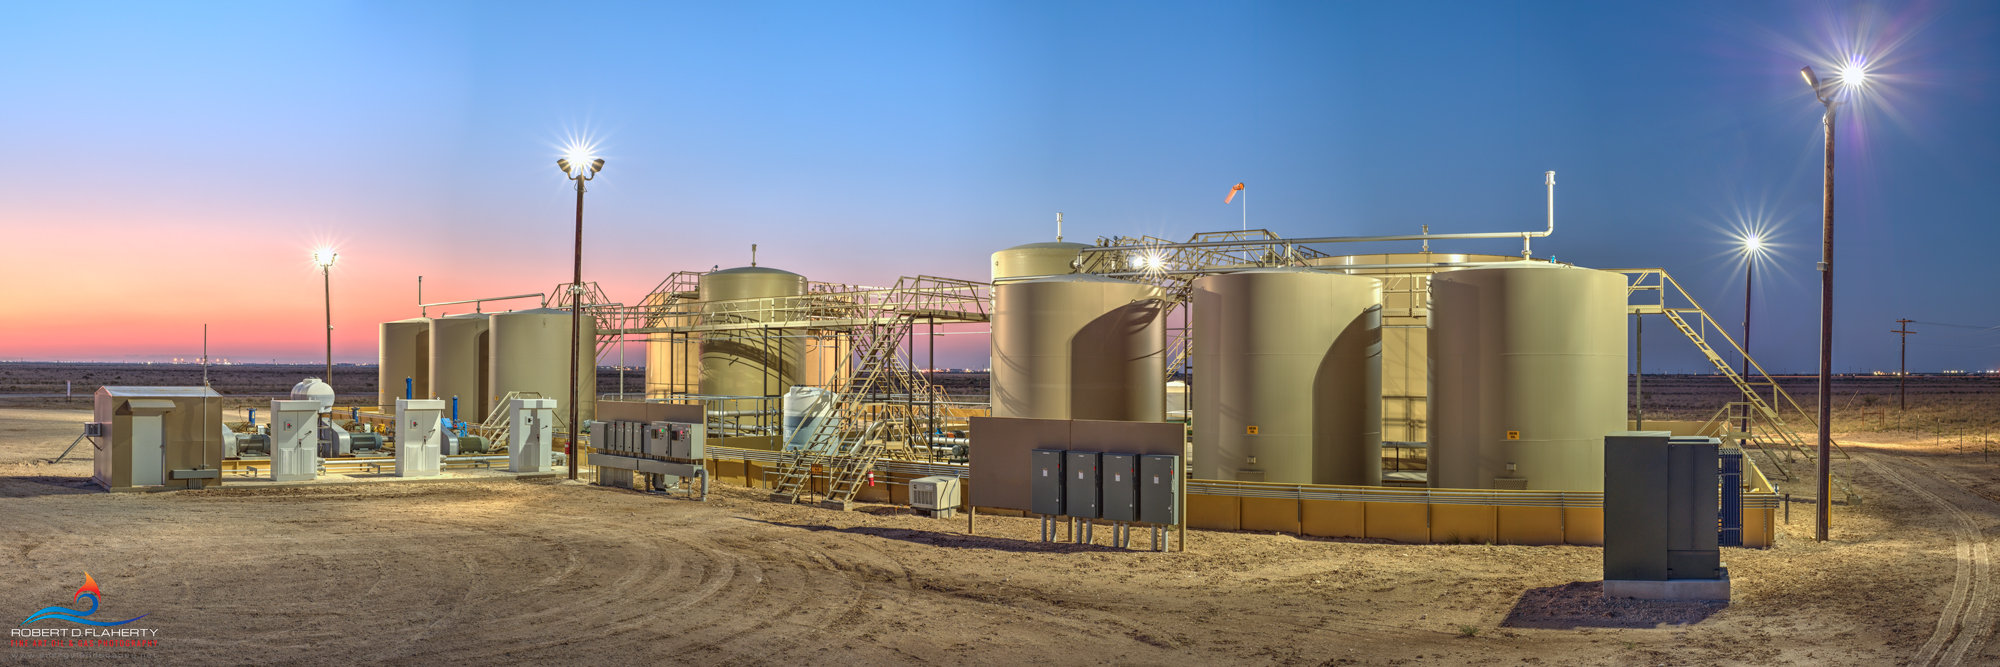 oilfield SWD, oilfield saltwater disposal, sunset, Pecos Texas, Delaware Basin, pastel, midstream SWD, photo